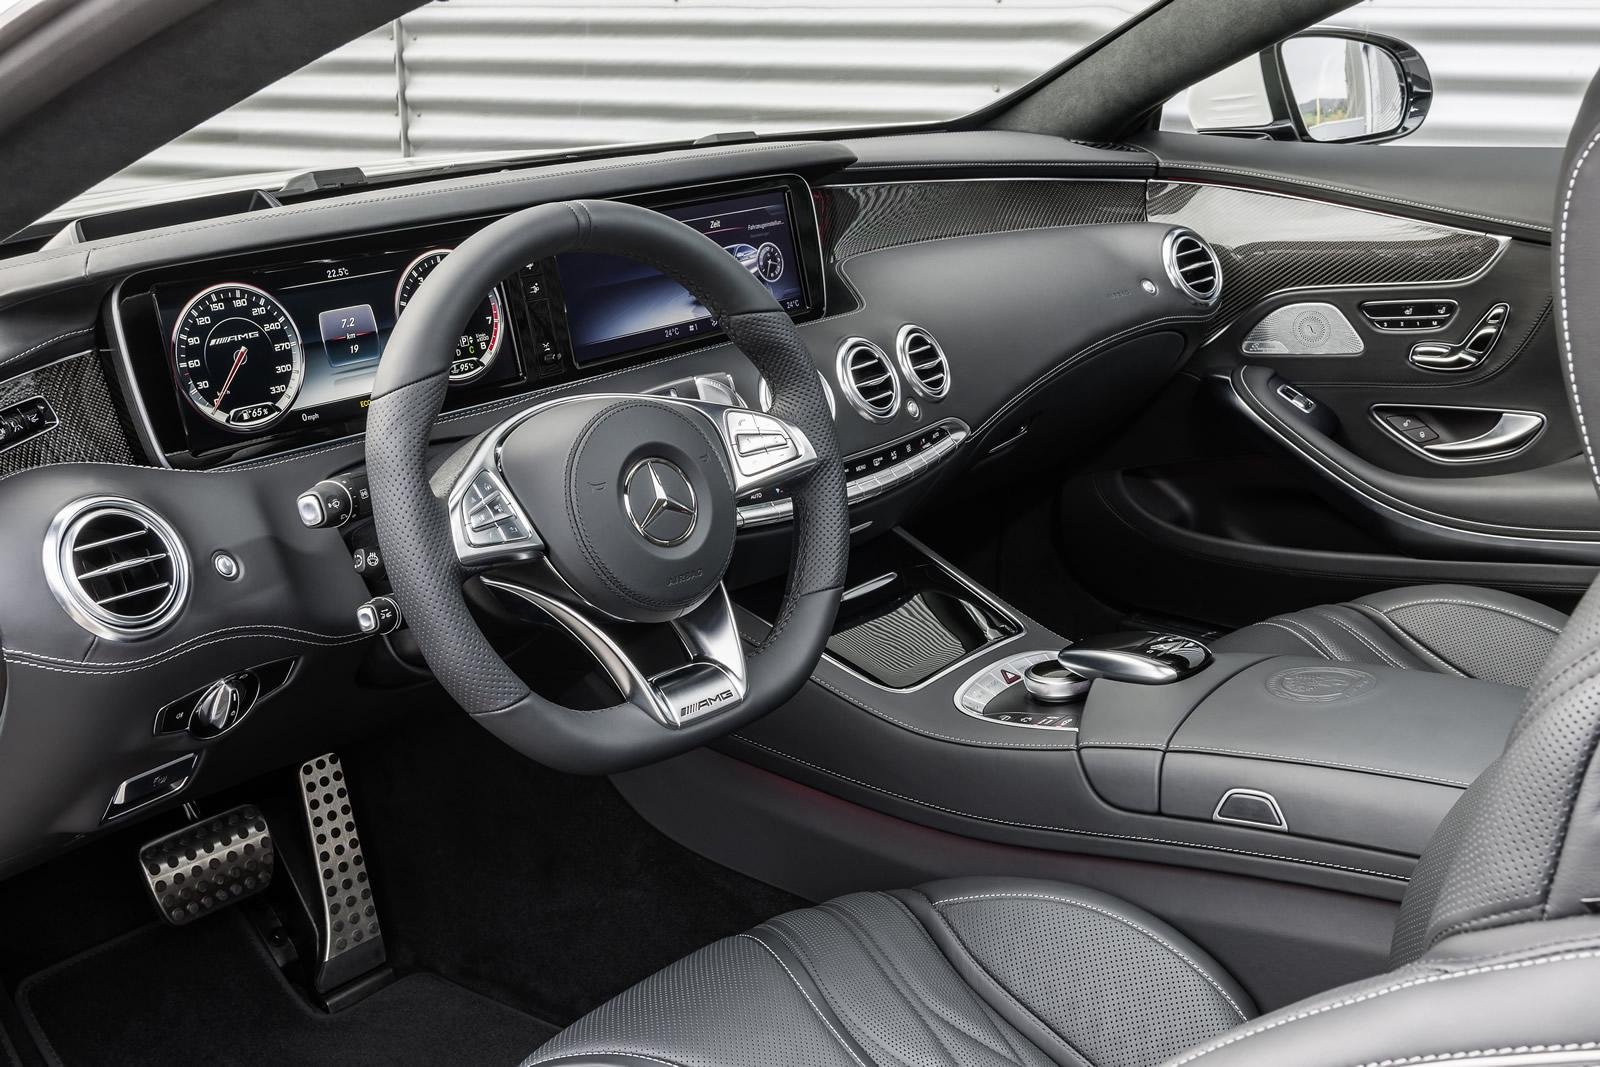 2014-Mercedes-Benz-S63-AMG-Coupe-dashboard - ForceGT.com